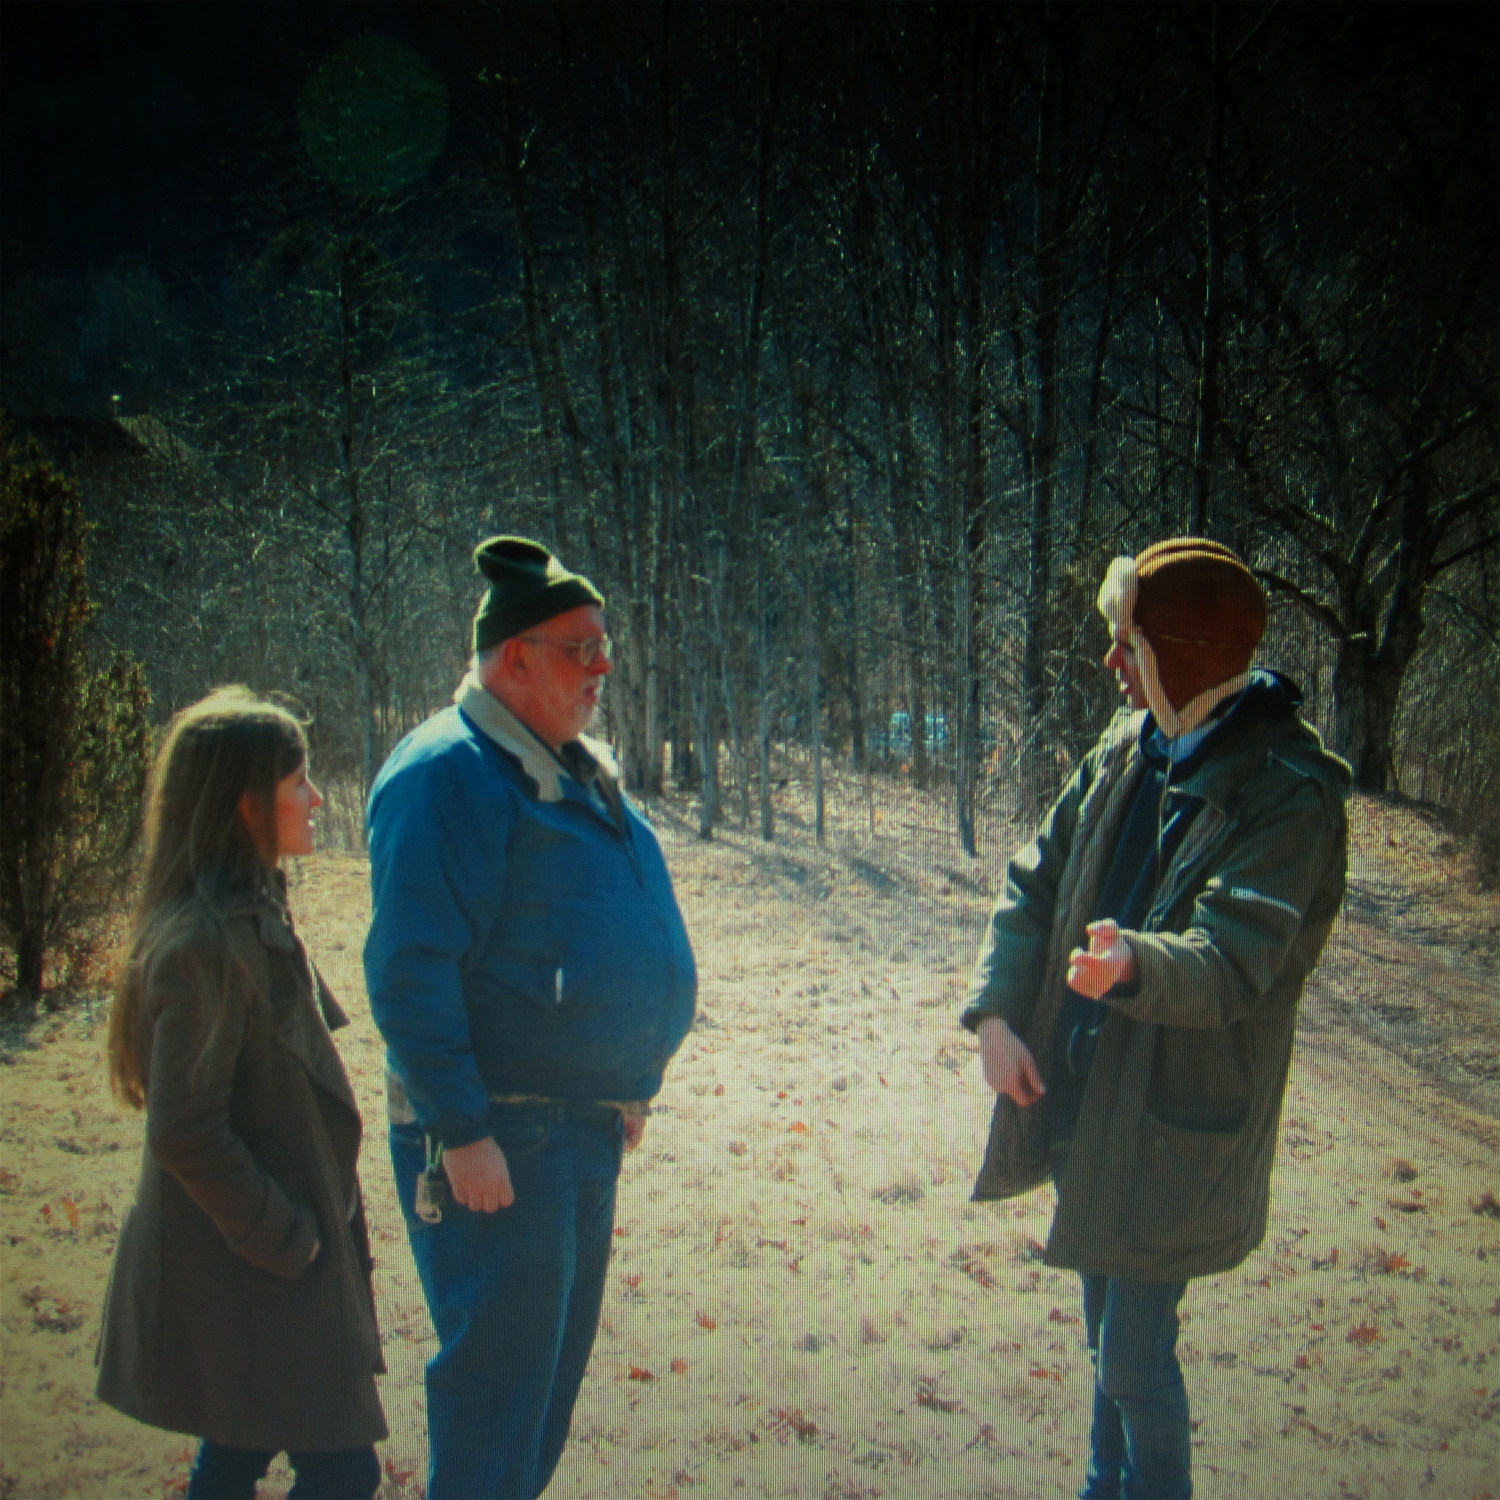 Review of Dirty Projectors' album, 'Swing Lo Magellan'